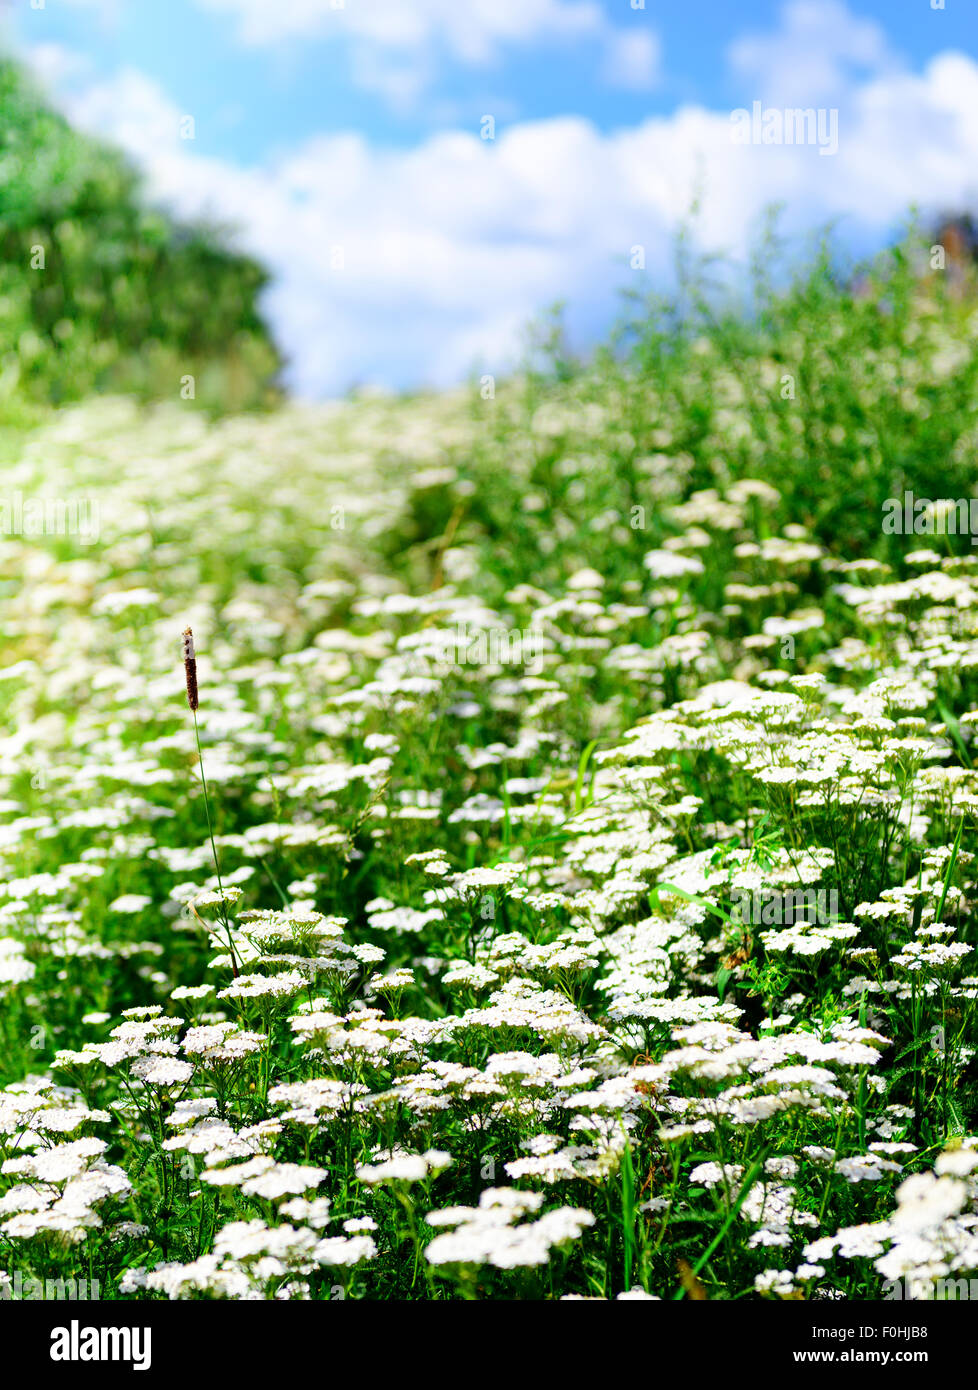 Summer flowering grass and green plants - Stock Image